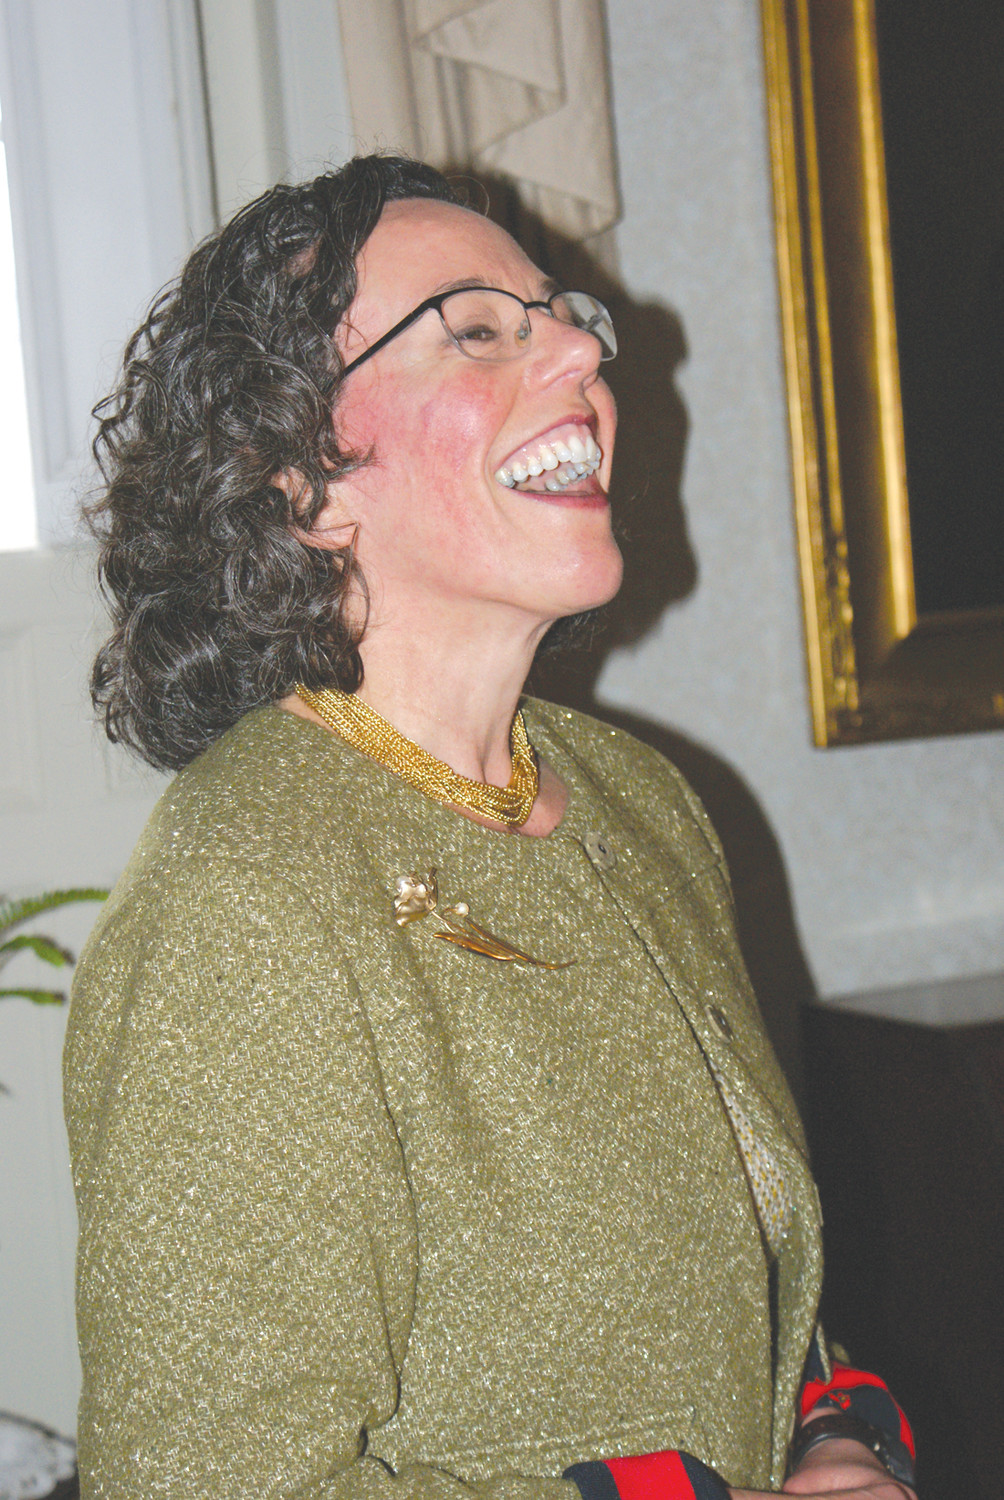 A HAPPY PRESENTER: For the first time in the Annual Victorian Tea, sponsored by the Cranston Historical Society, featured Laura Johnson, Ph.D., a Curator at the Eustis Estate in Milton, Mass. who is seen reacting to a comment by a guest.